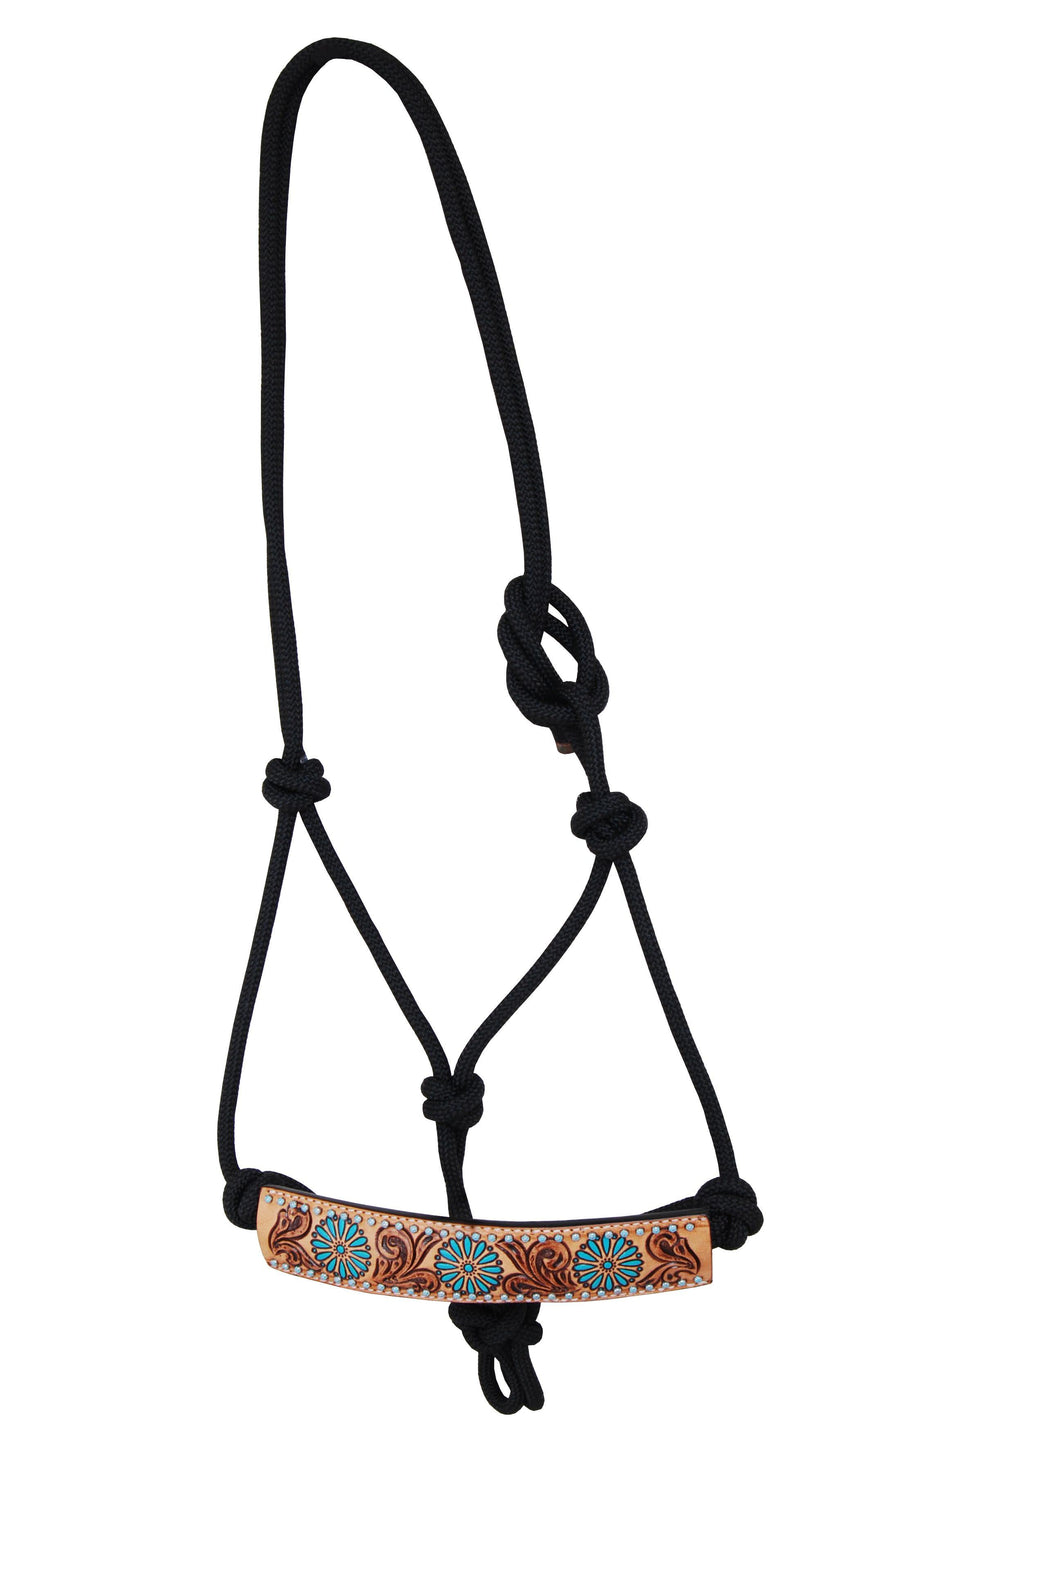 Rafter T Rope Halter - Turquoise Sun Spots